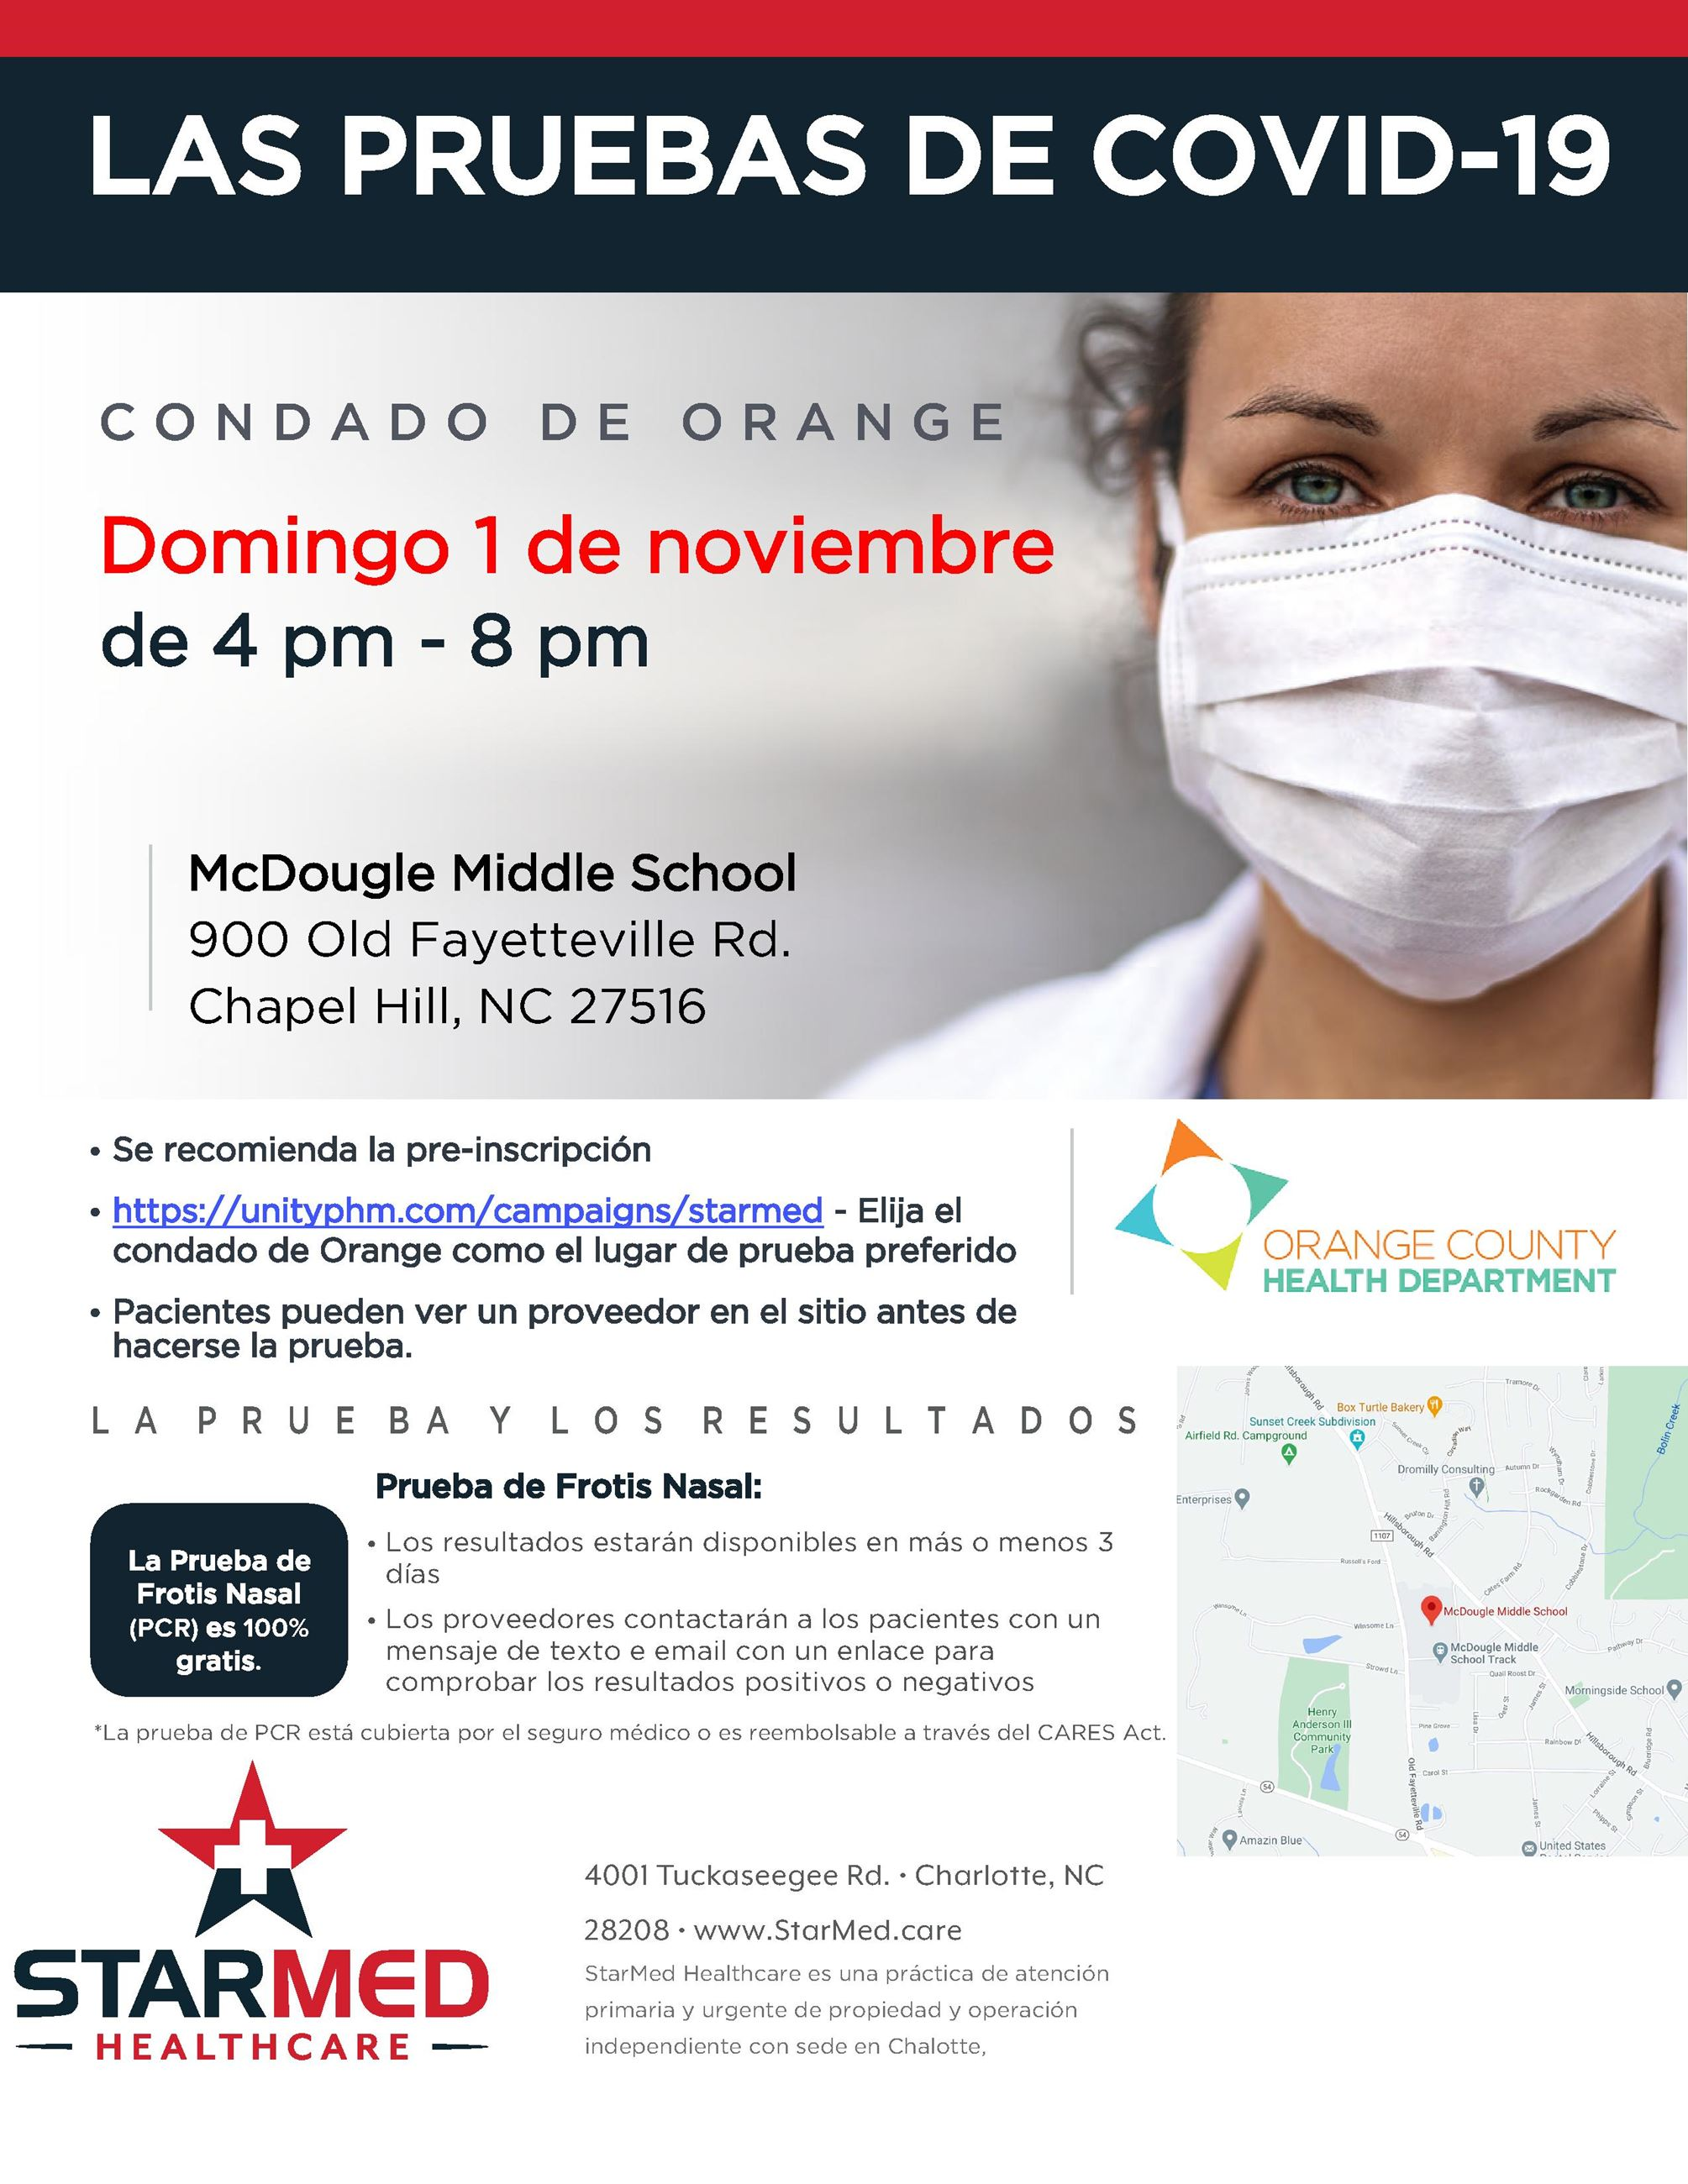 Covid19Flyer_McDougleMiddleSchool_11_1_SPANISH_202010211107102147